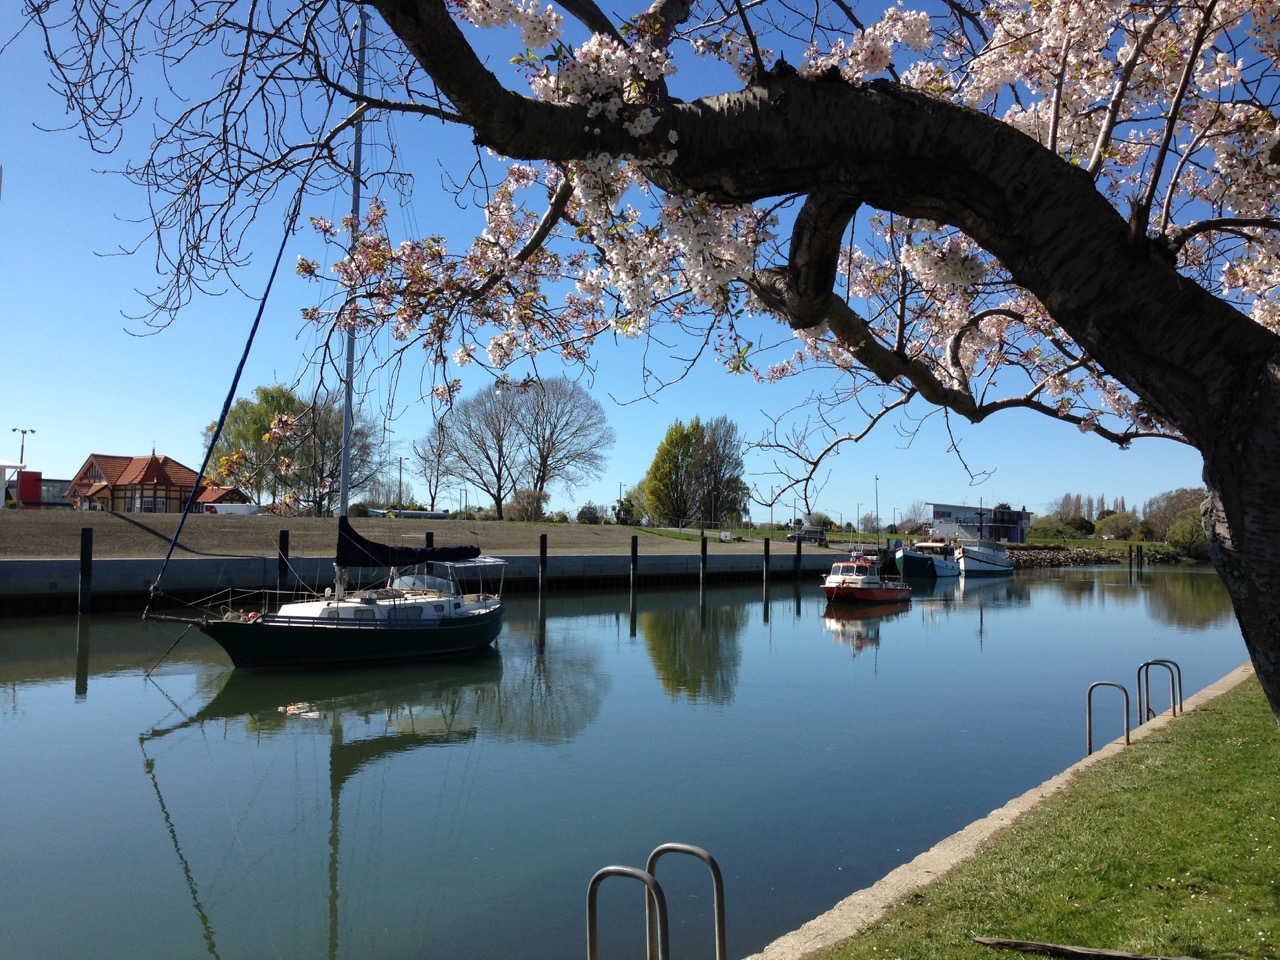 Kaiapoi things to do – Walking, Cycling, Fishing, Motorbike trails, Beaches, Geocaching